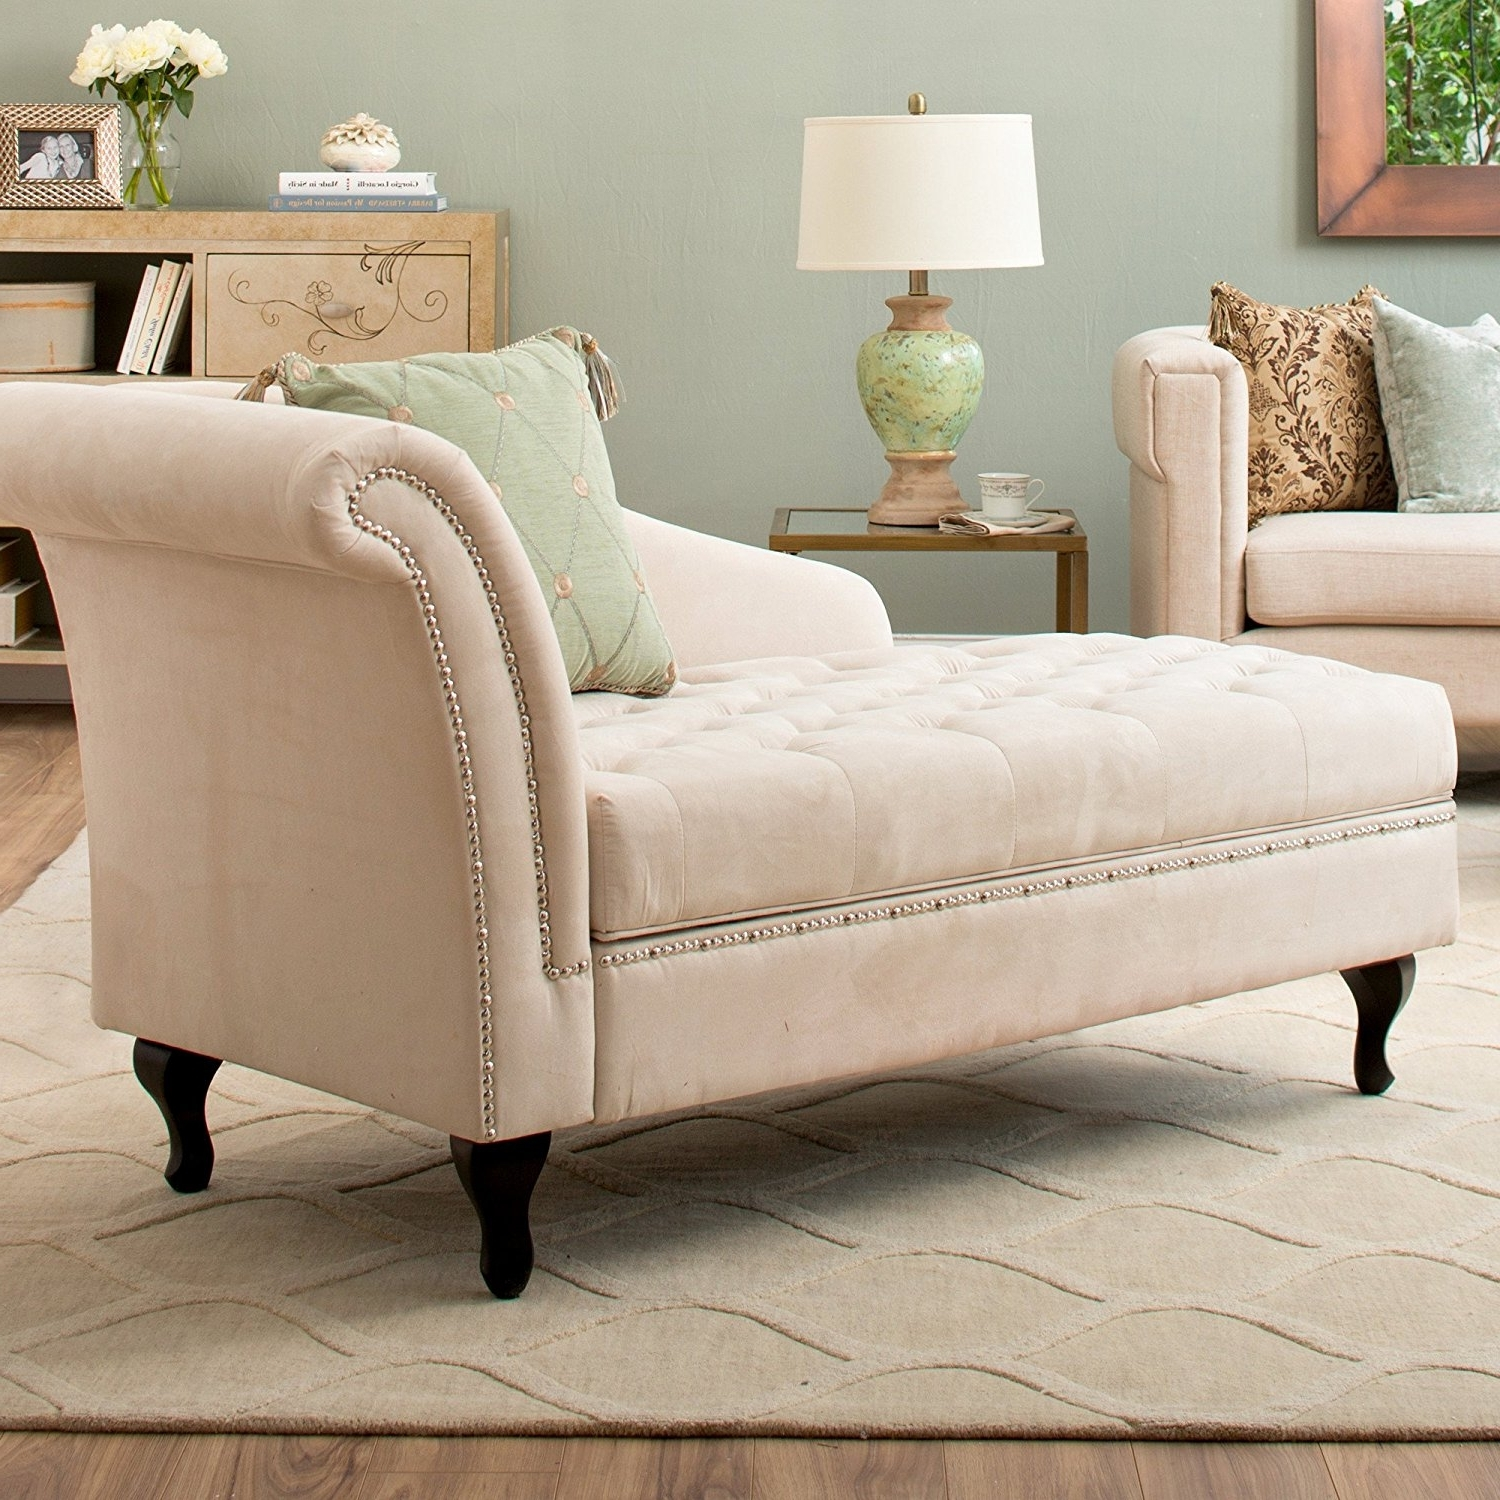 Well Known Chaise Lounges For Bedroom Regarding Lovely Bedroom Chaise Lounge Chairs (38 Photos) (View 14 of 15)